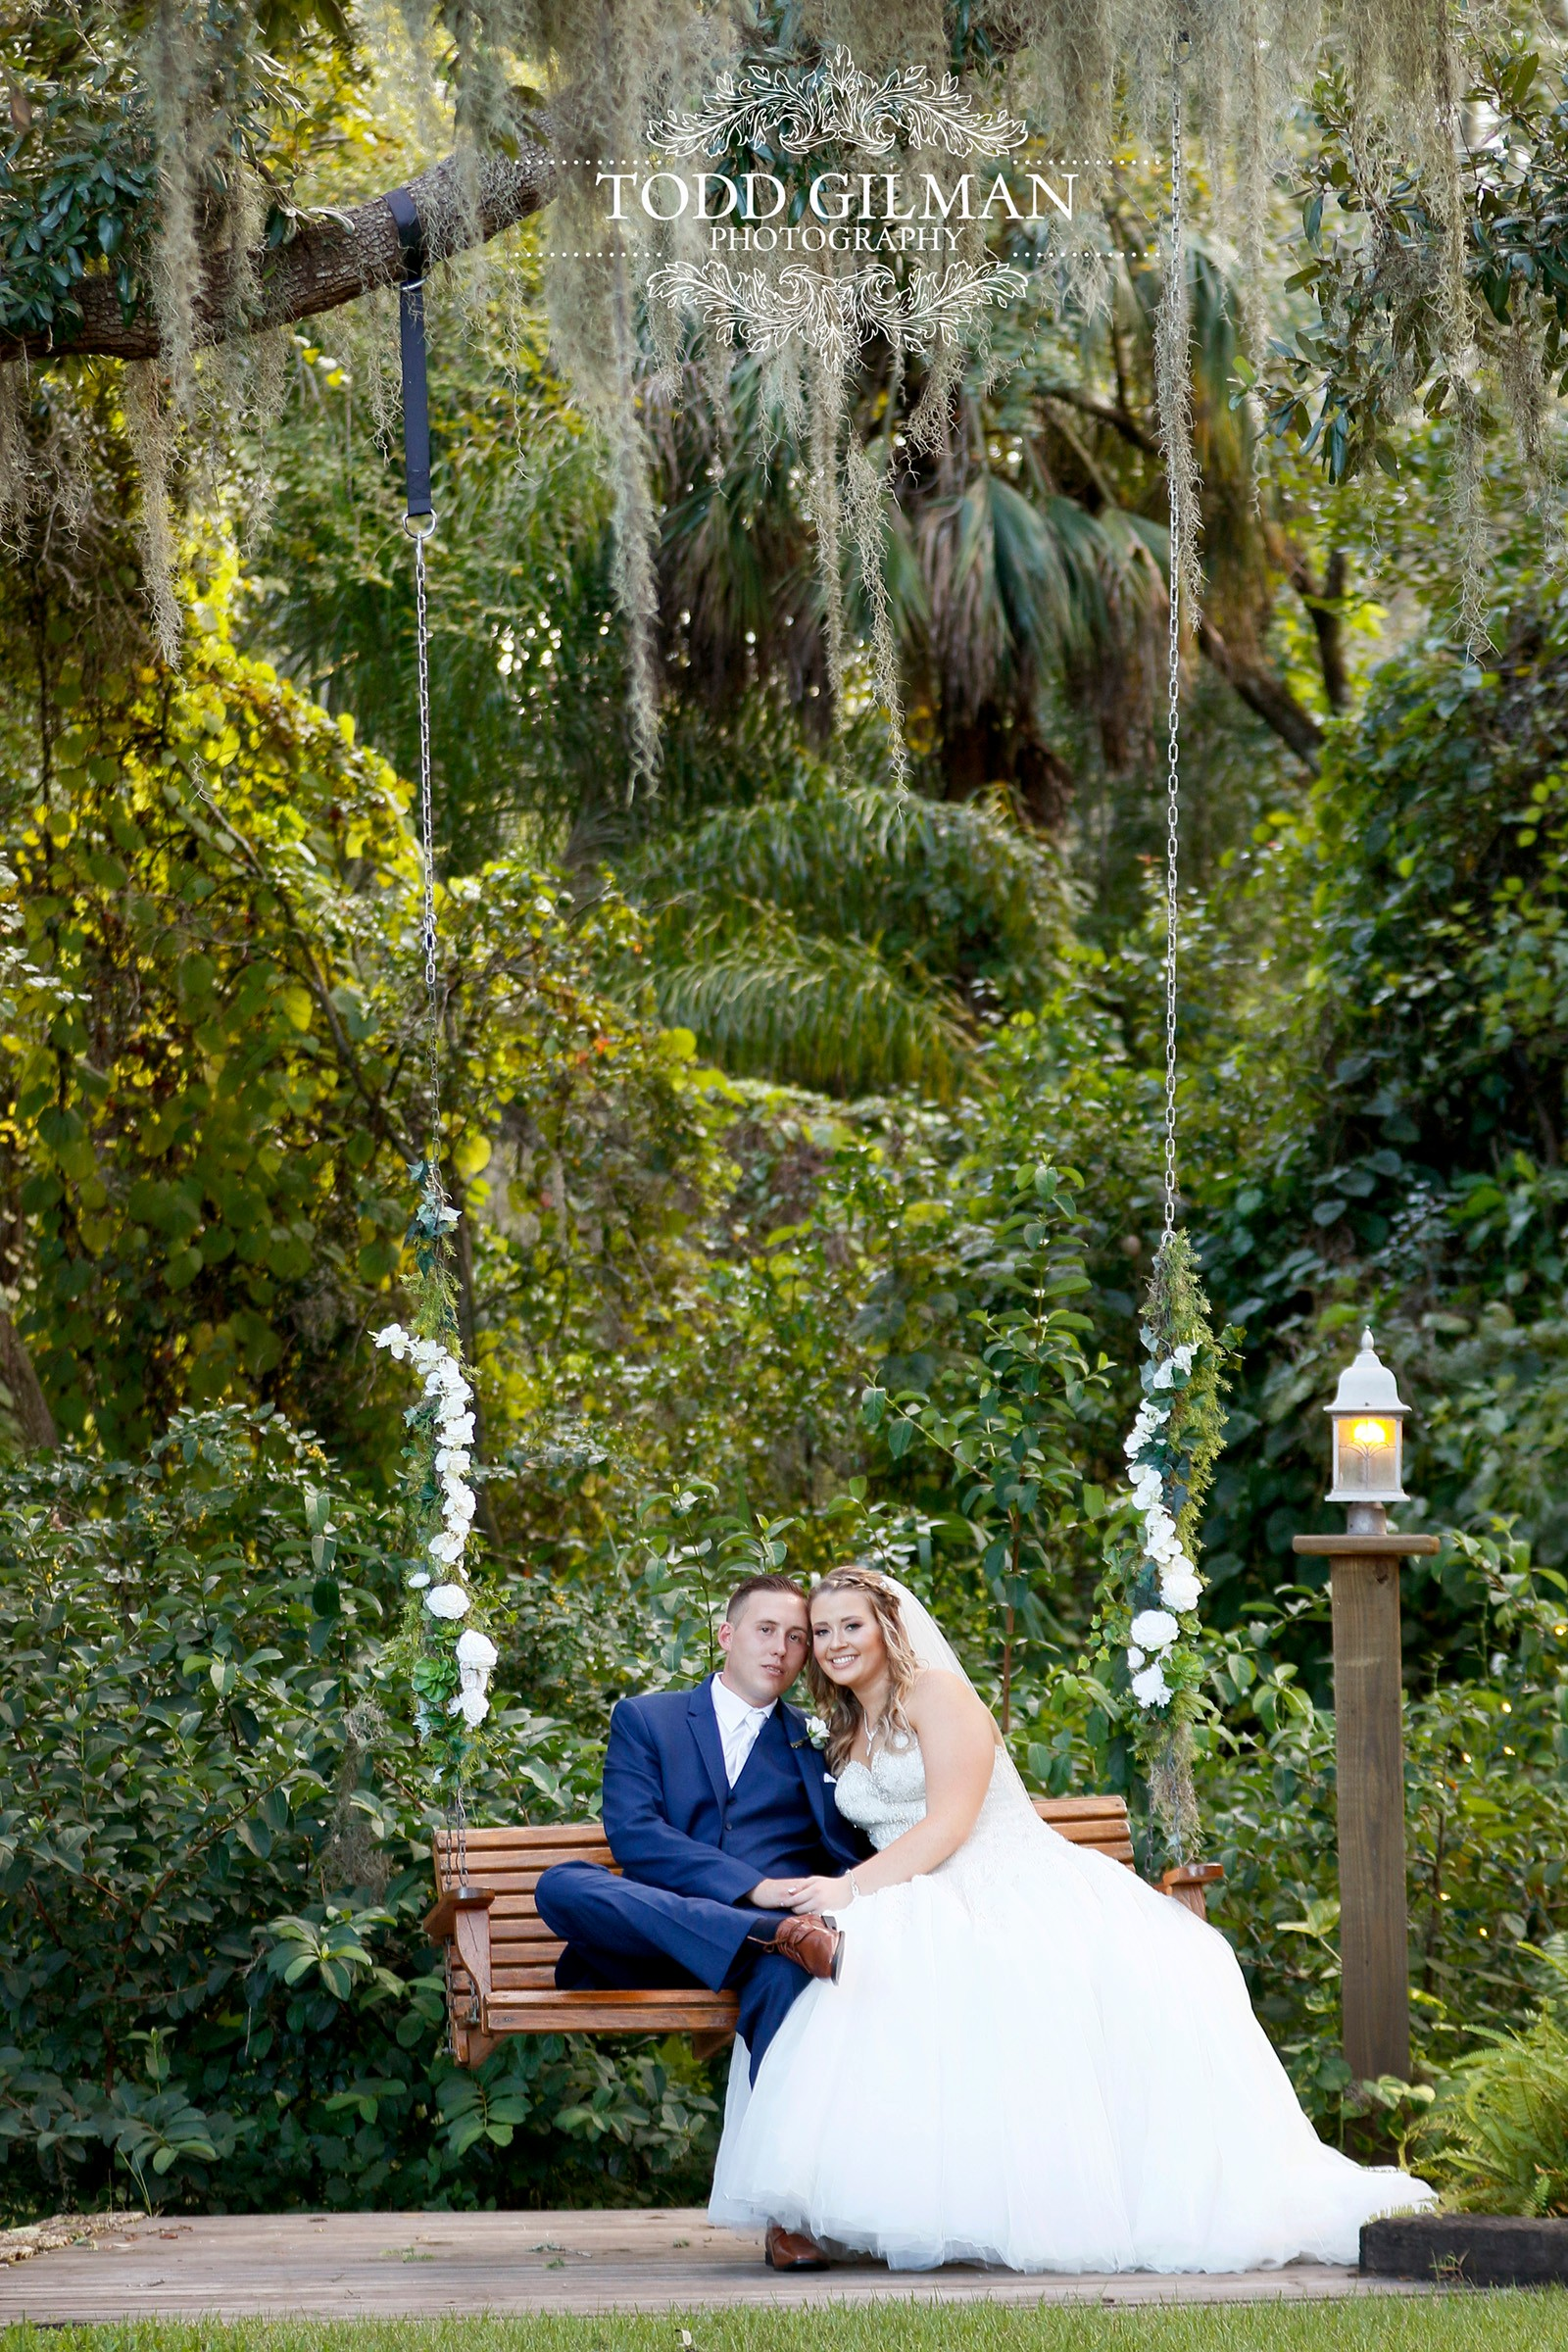 Bakers Ranch- All Inclusive - Wedding Venue  (88).jpg